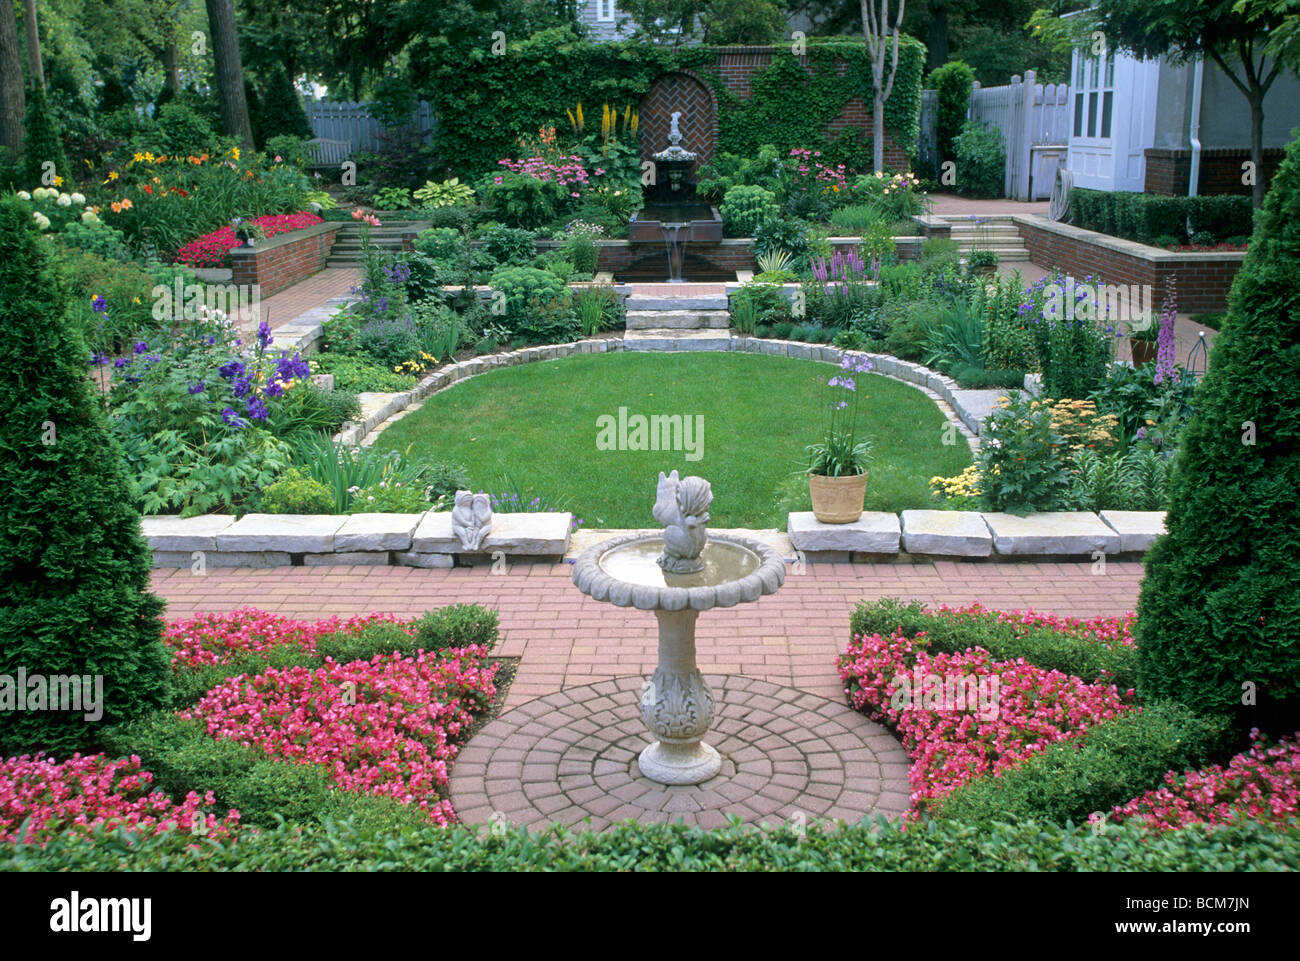 FORMAL GARDEN IN MINNEAPOLIS, MINNESOTA. BEGONIAS, BOXWOOD, ARBORVITAE AND A MIXTURE OF PERENNIALS.  SUMMER. Stock Photo